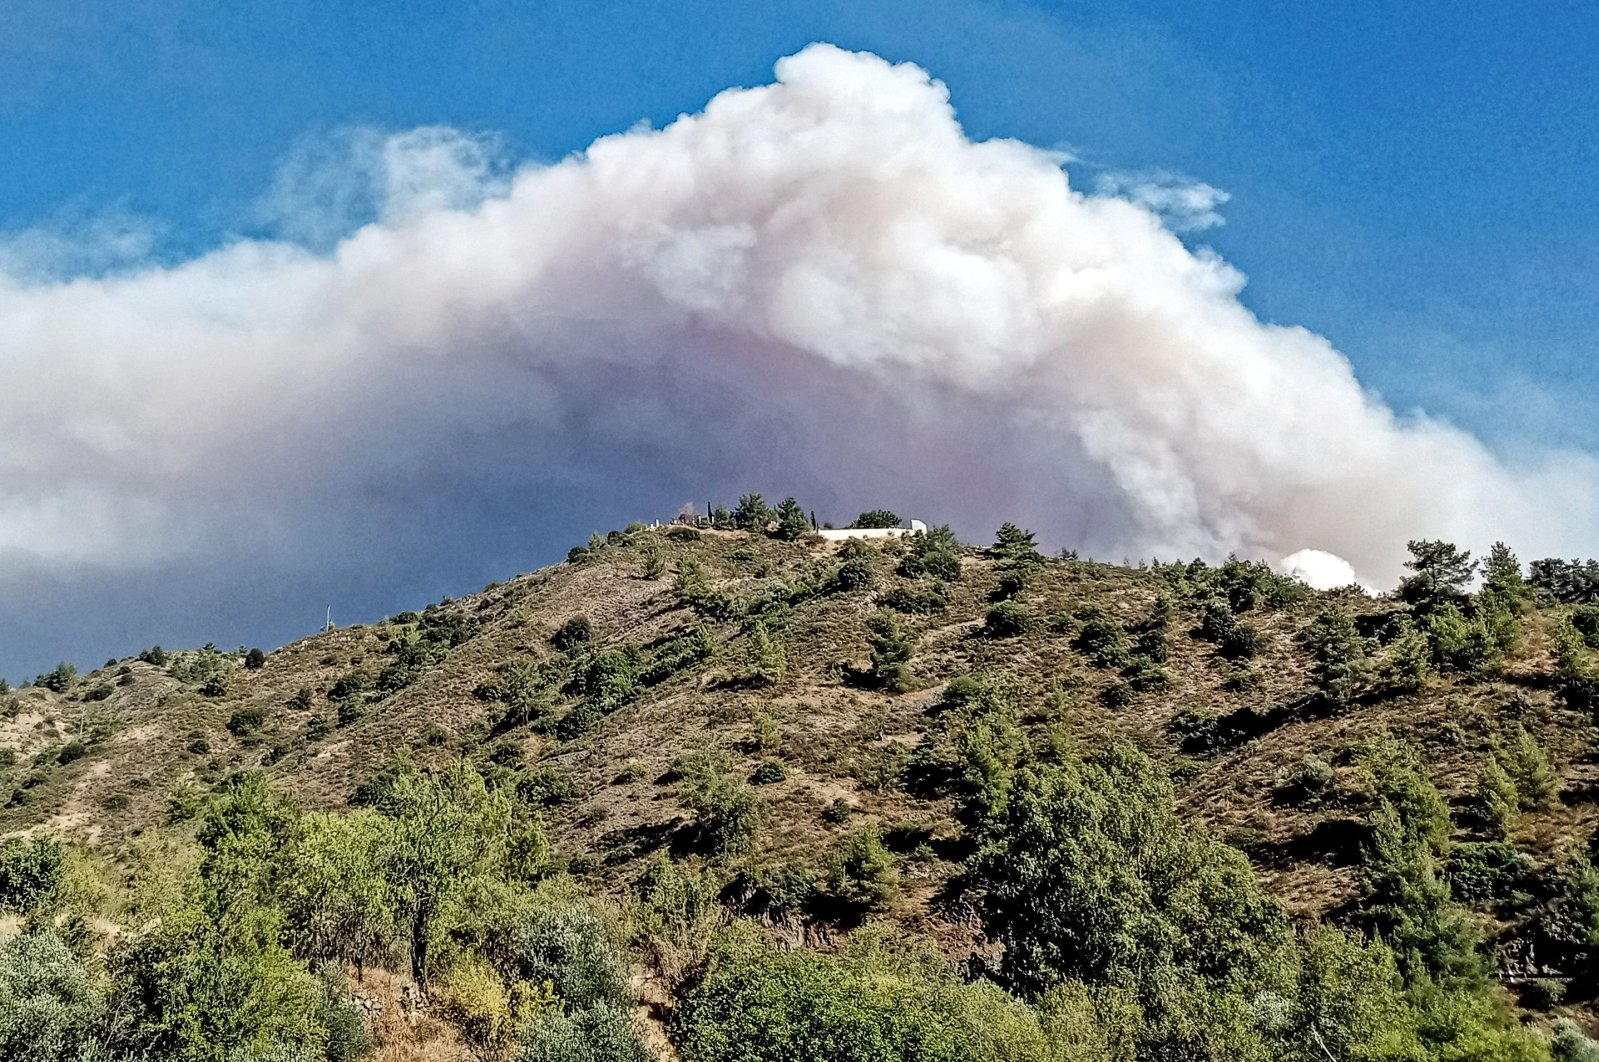 A picture taken from near the village of Farmakas in the Nicosia district of Greek Cyprus, shows heavy smoke billowing from behind the mountains as a giant fire rages in the Larnaca district of the island, on July 3, 2021. (AFP Photo)